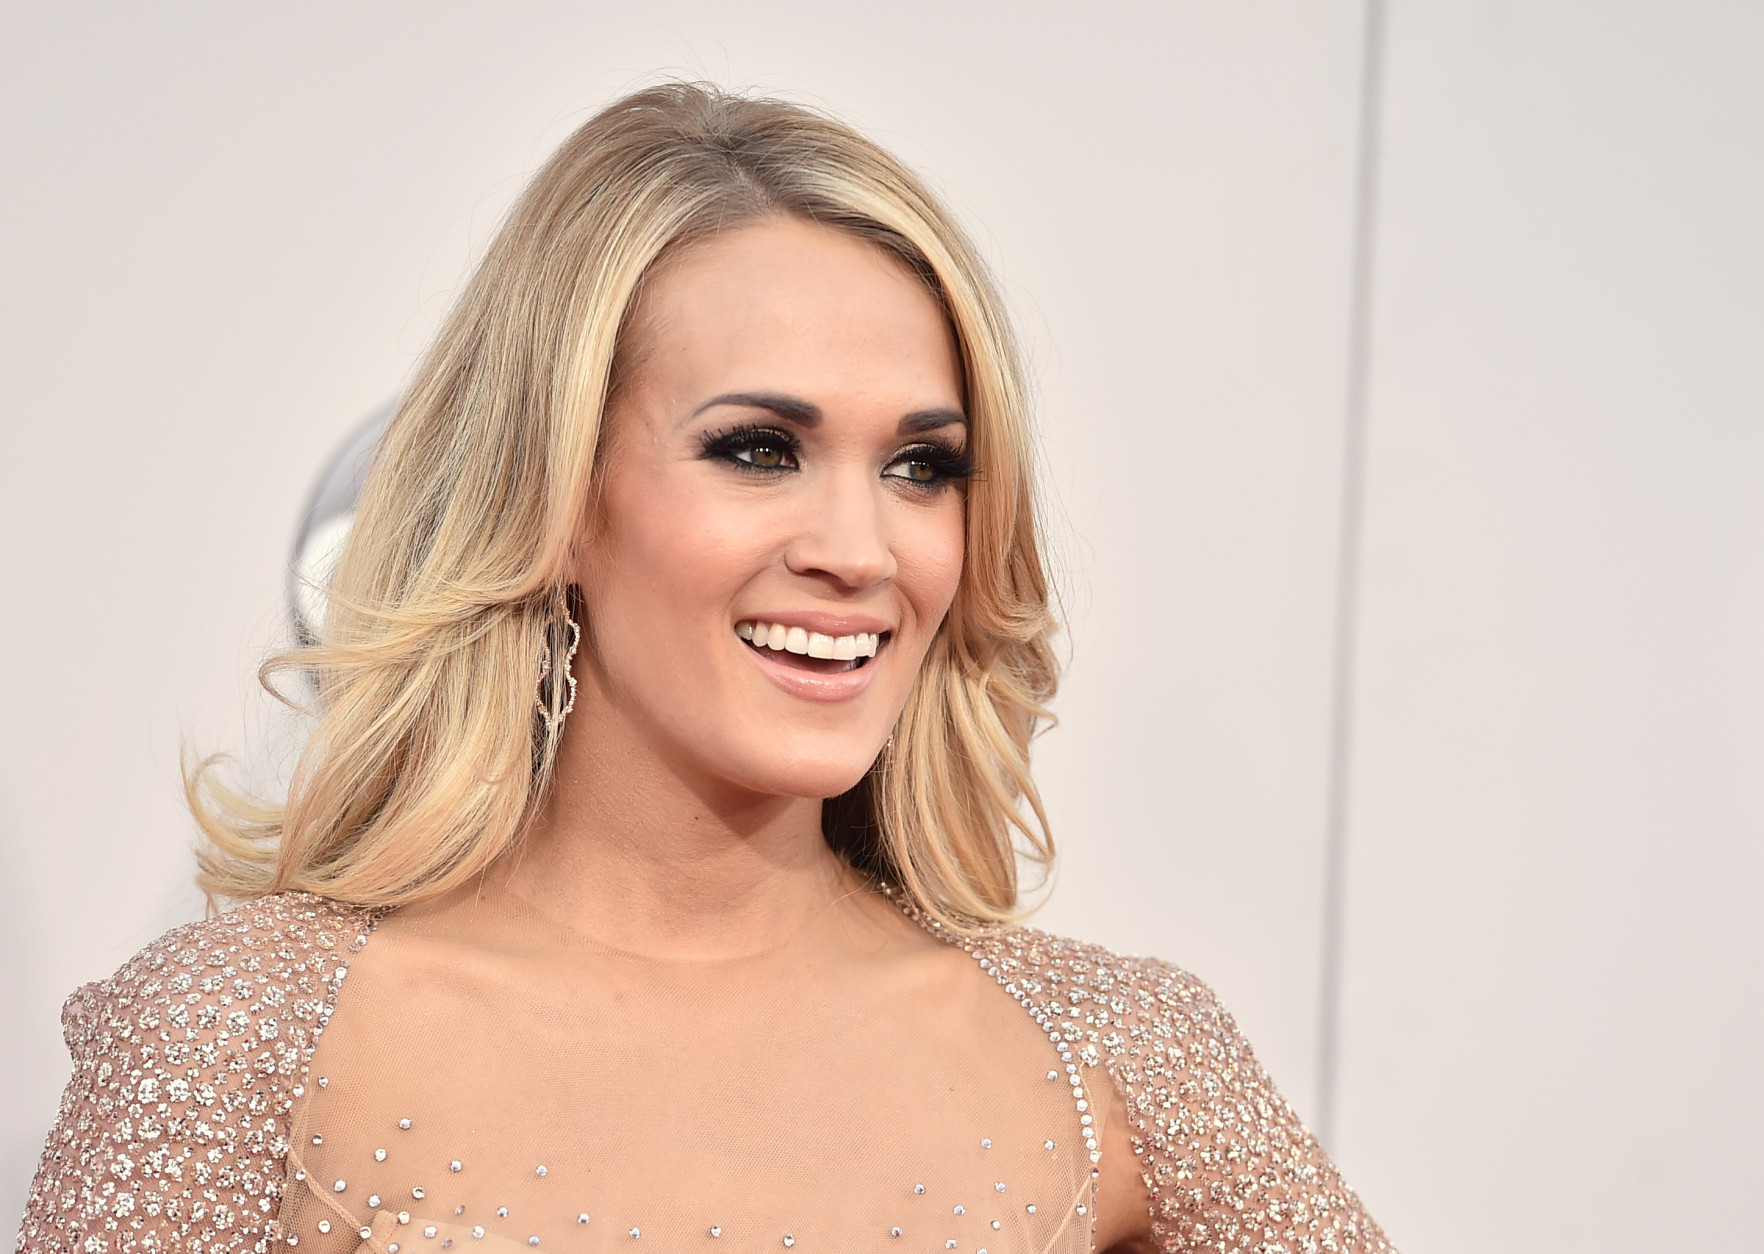 Carrie Underwood arrives at the American Music Awards at the Microsoft Theater on Sunday, Nov. 22, 2015, in Los Angeles. (Photo by Jordan Strauss/Invision/AP)